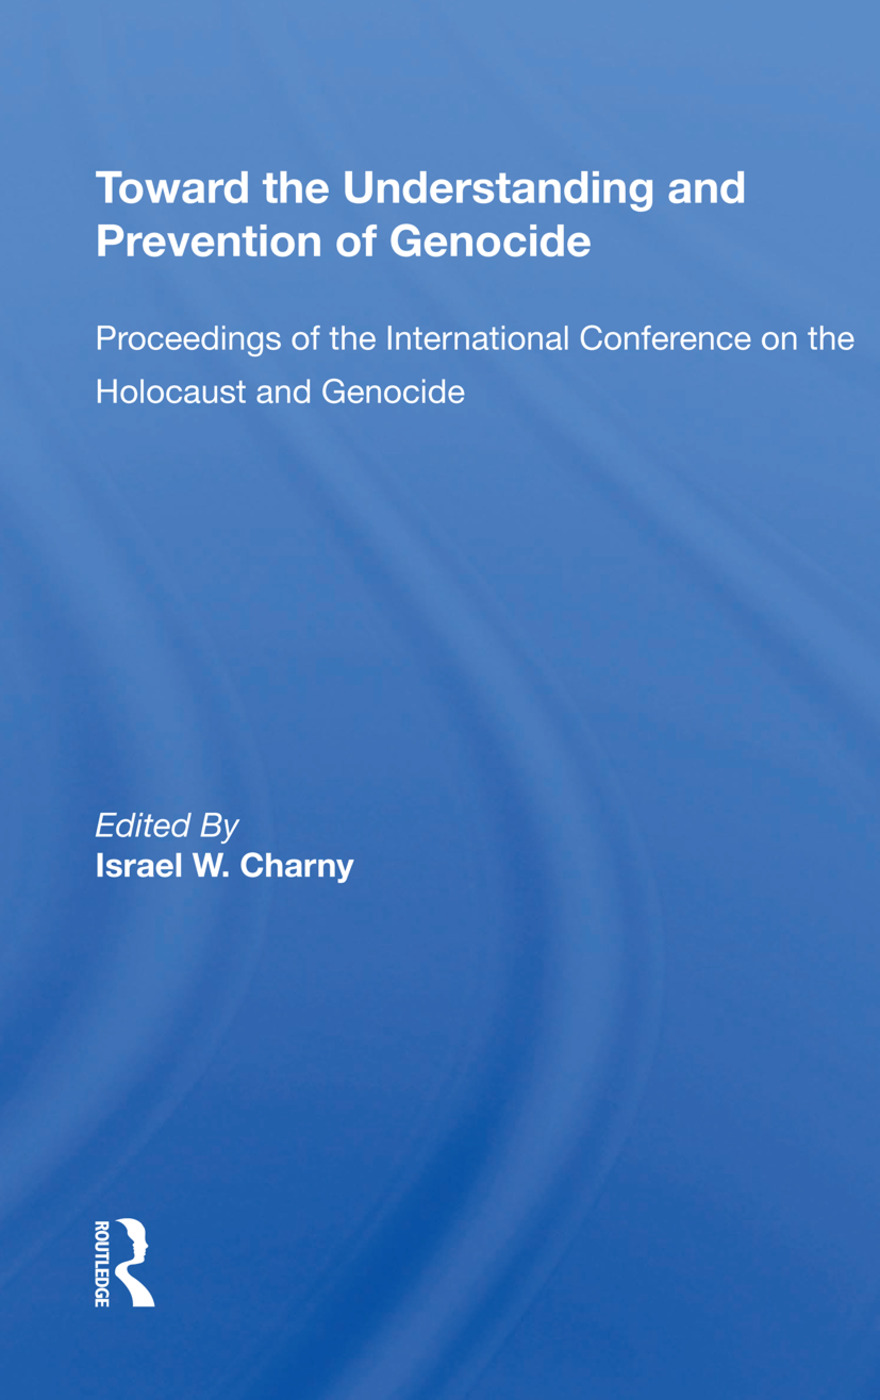 Toward The Understanding And Prevention Of Genocide: Proceedings Of The International Conference On The Holocaust And Genocide book cover